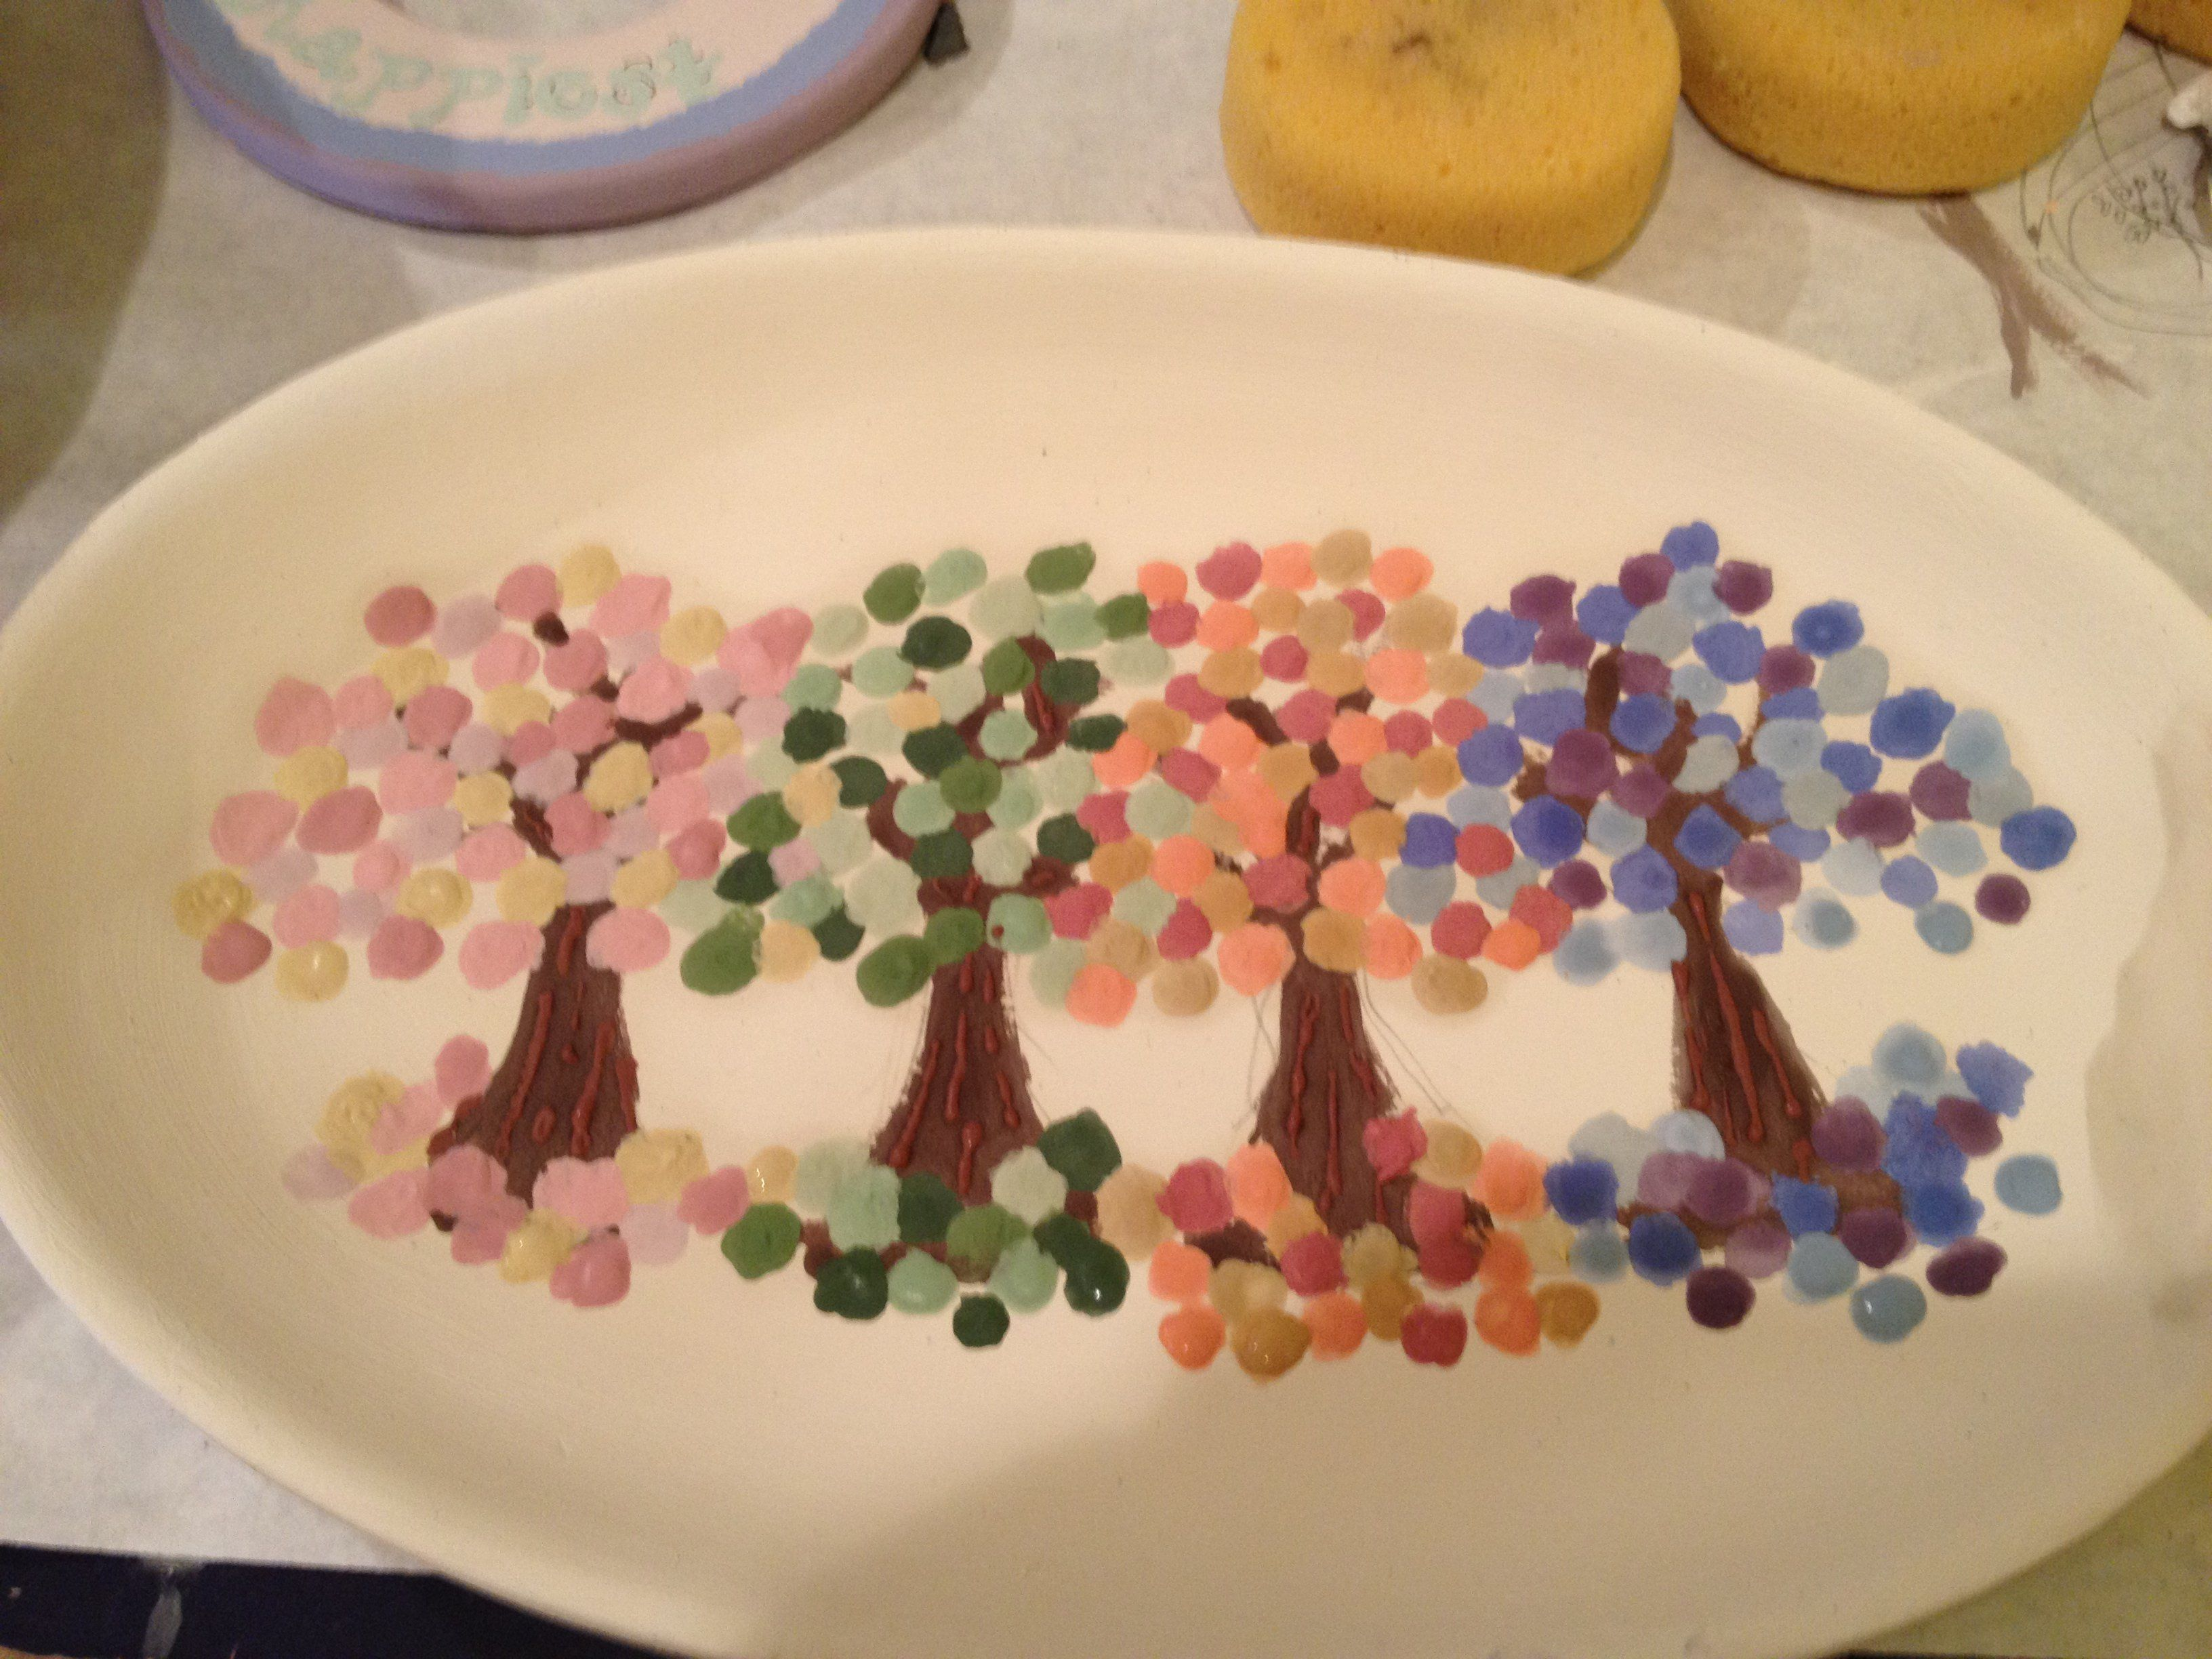 Easy painted pottery designs the image - Painting ideas for pottery ...